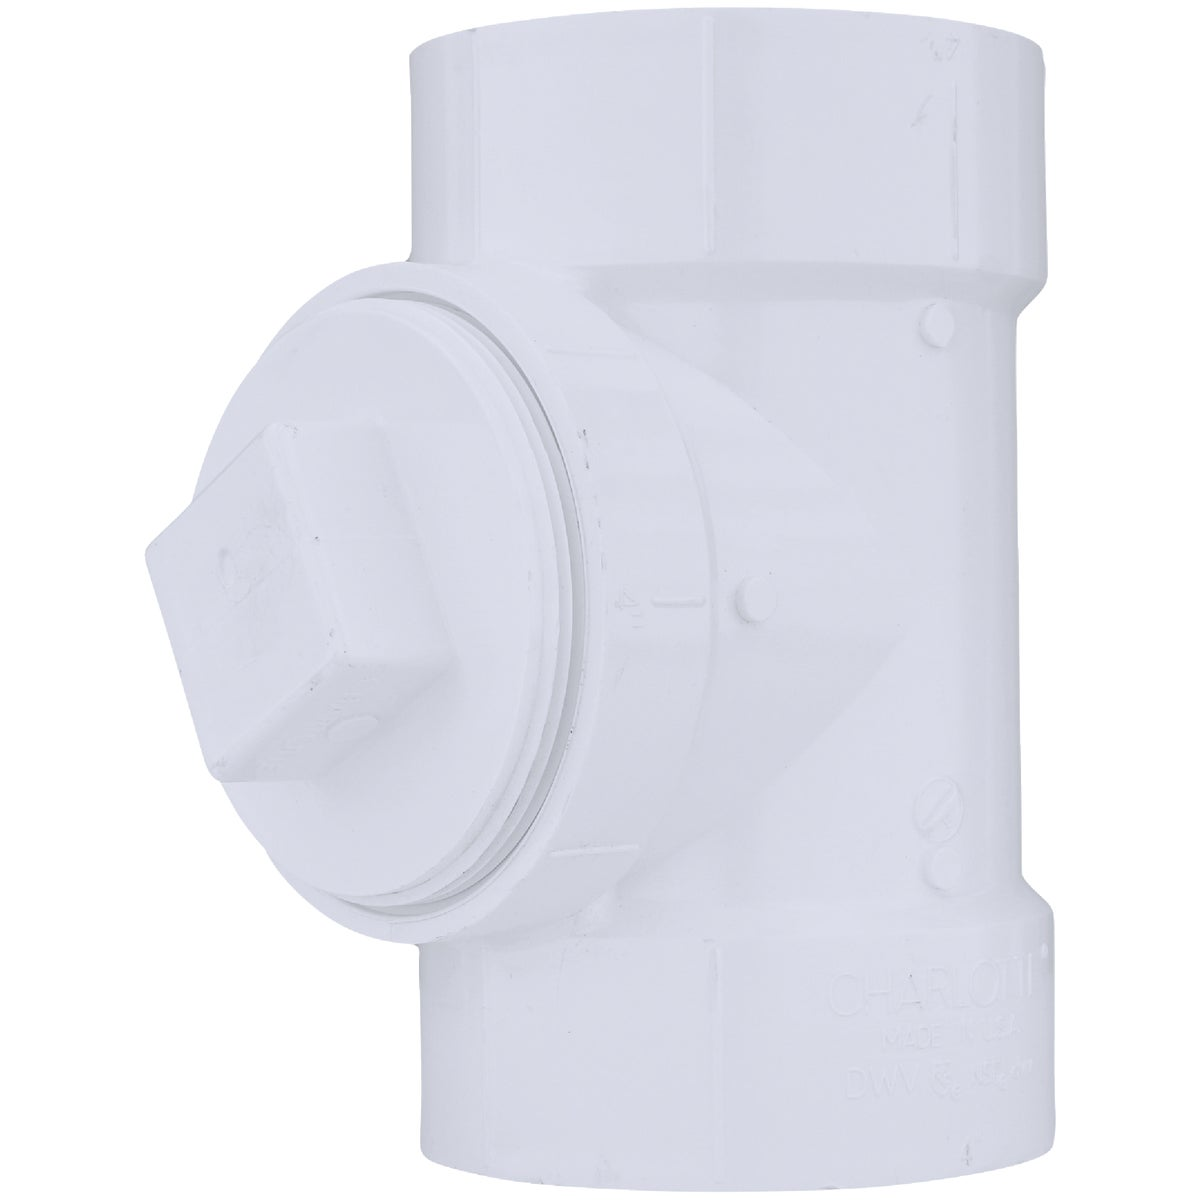 "4"" TEST TEE W/ PLUG - 71340 by Genova Inc  Pvc Dwv"